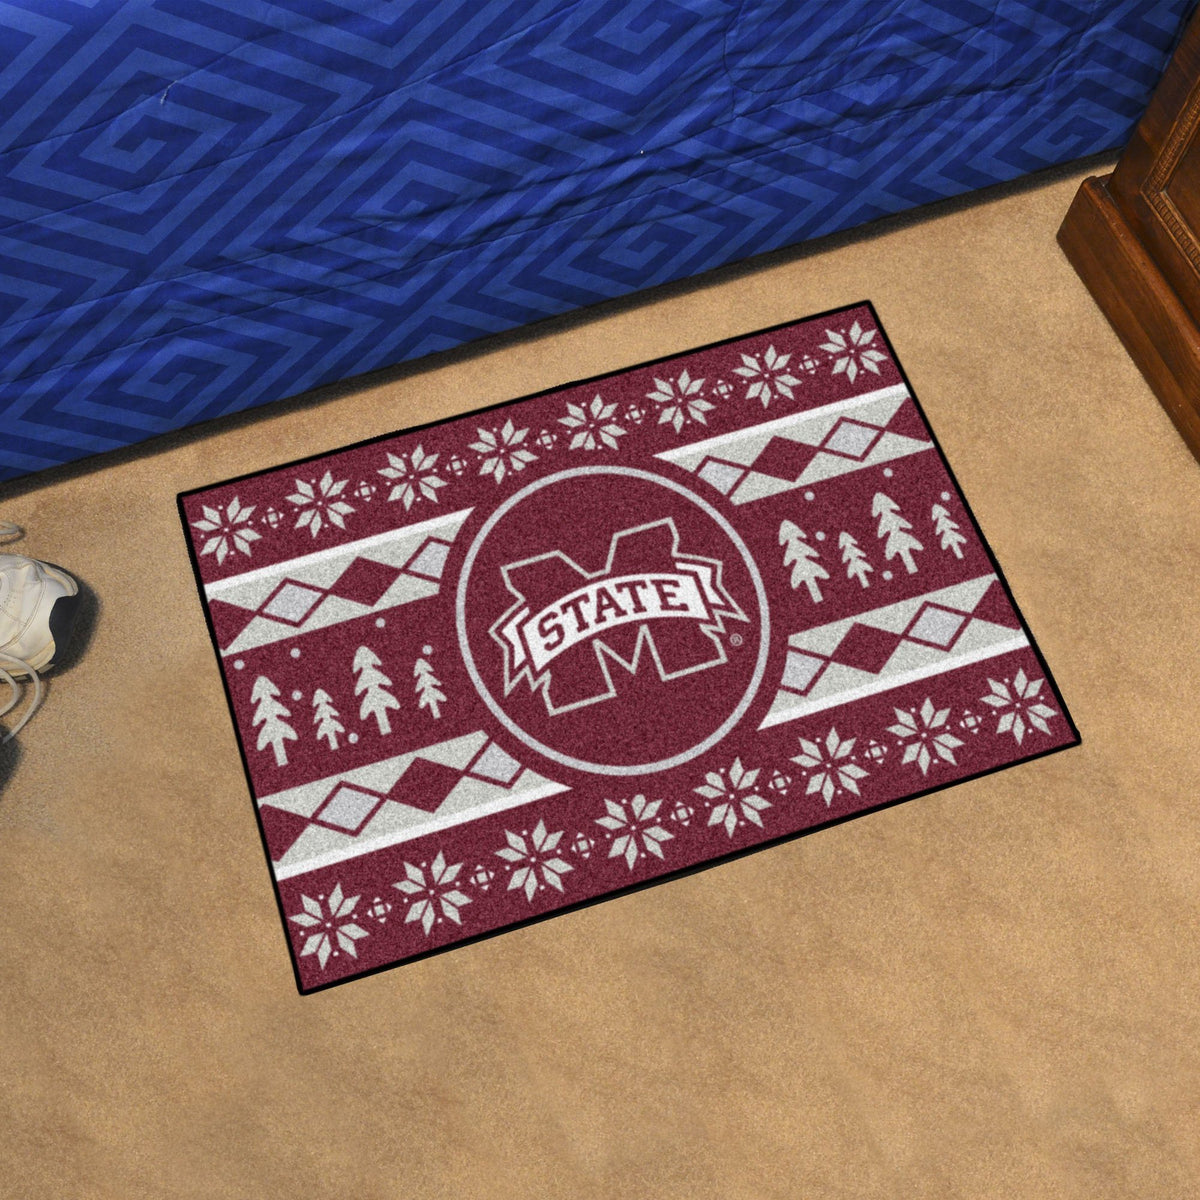 Collegiate - Holiday Sweater Starter Mat Collegiate Mats, Rectangular Mats, Holiday Sweater Starter Mat, Collegiate, Home Fan Mats Mississippi State